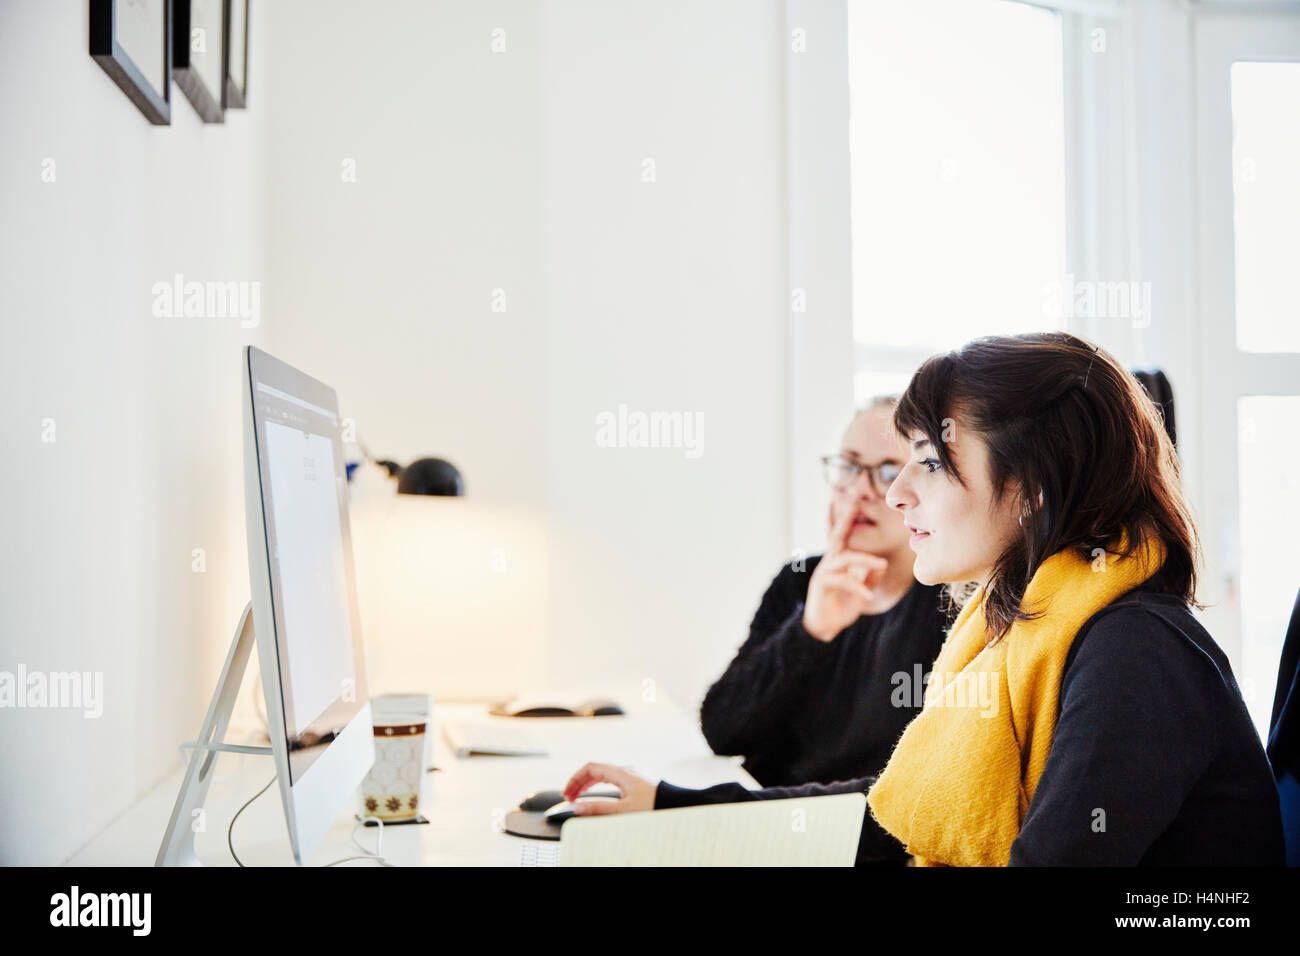 Two women seated sharing a computer screen and discussing the graphic content. - Stock Image